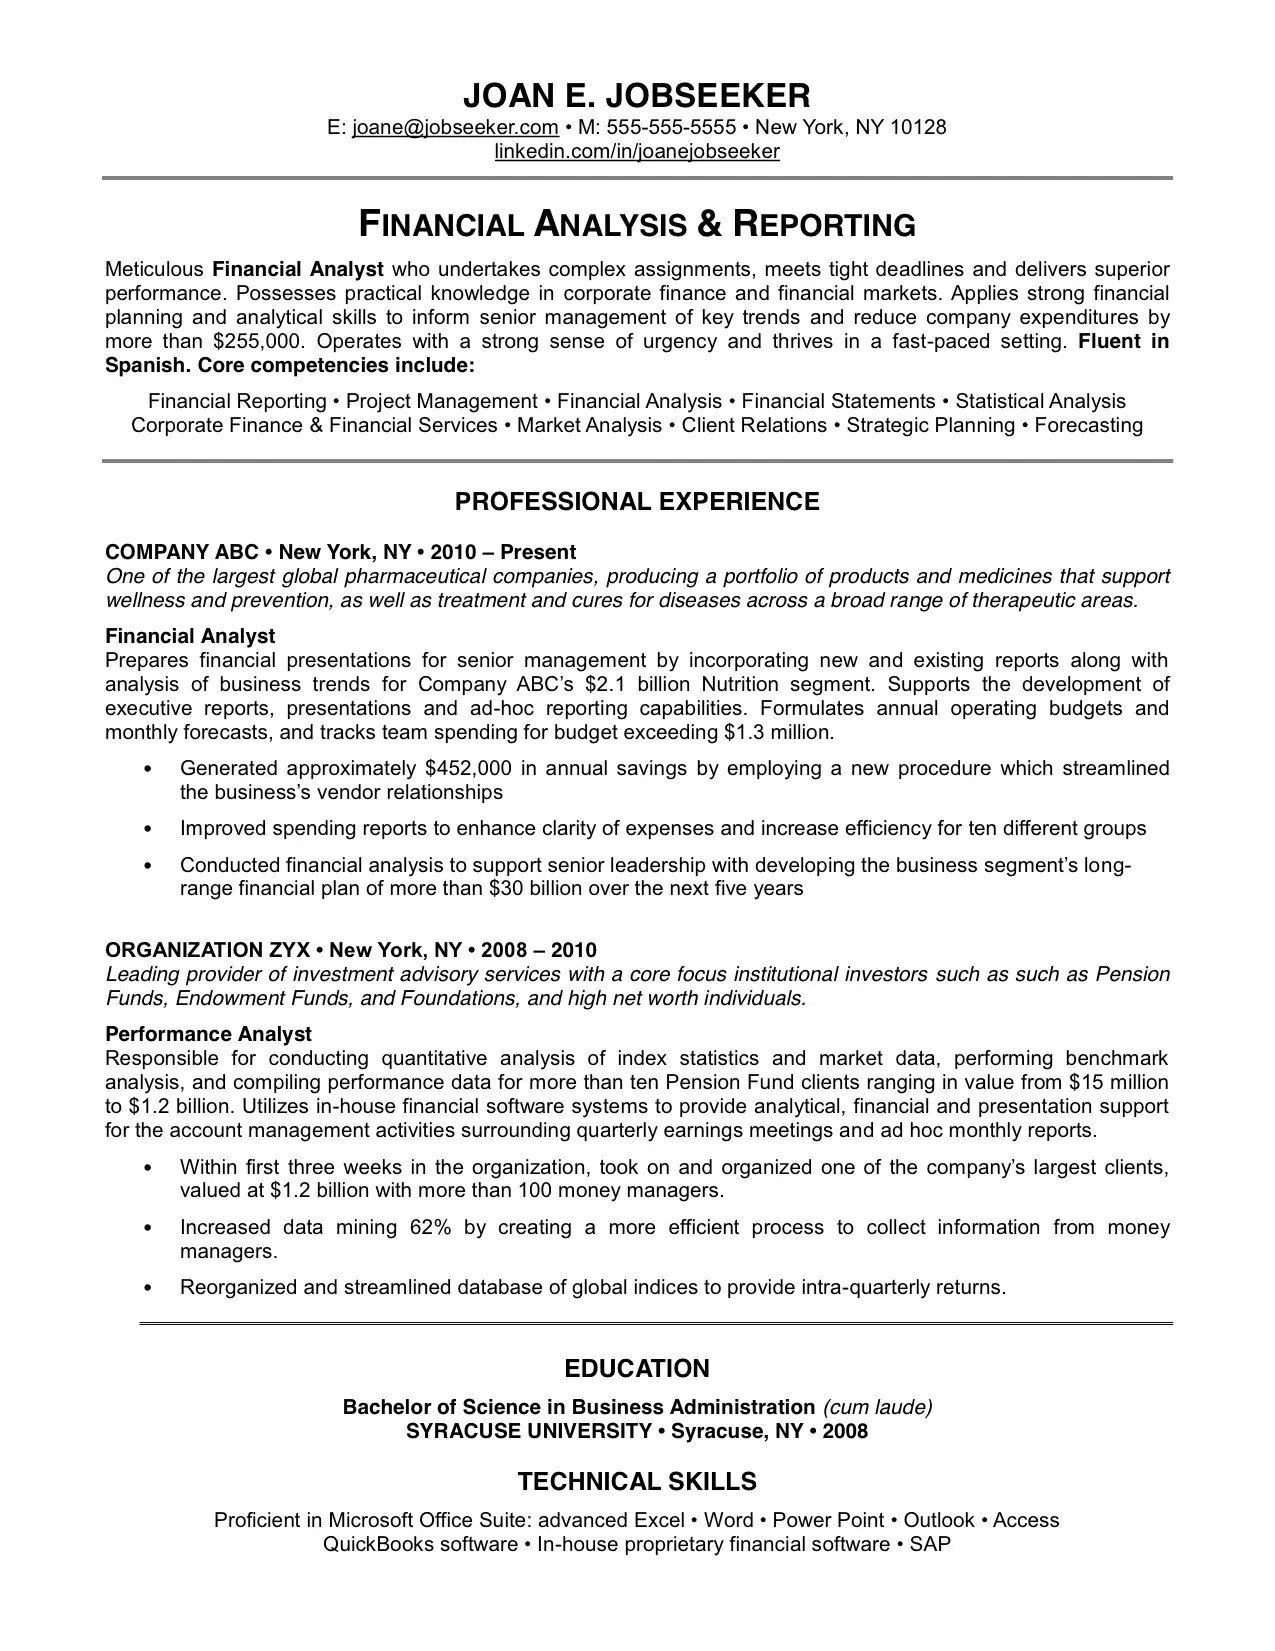 nursing resume profile cover letter templates nursing resume profile nursing resumeorg while resumes should be tailored to the industry youre in the